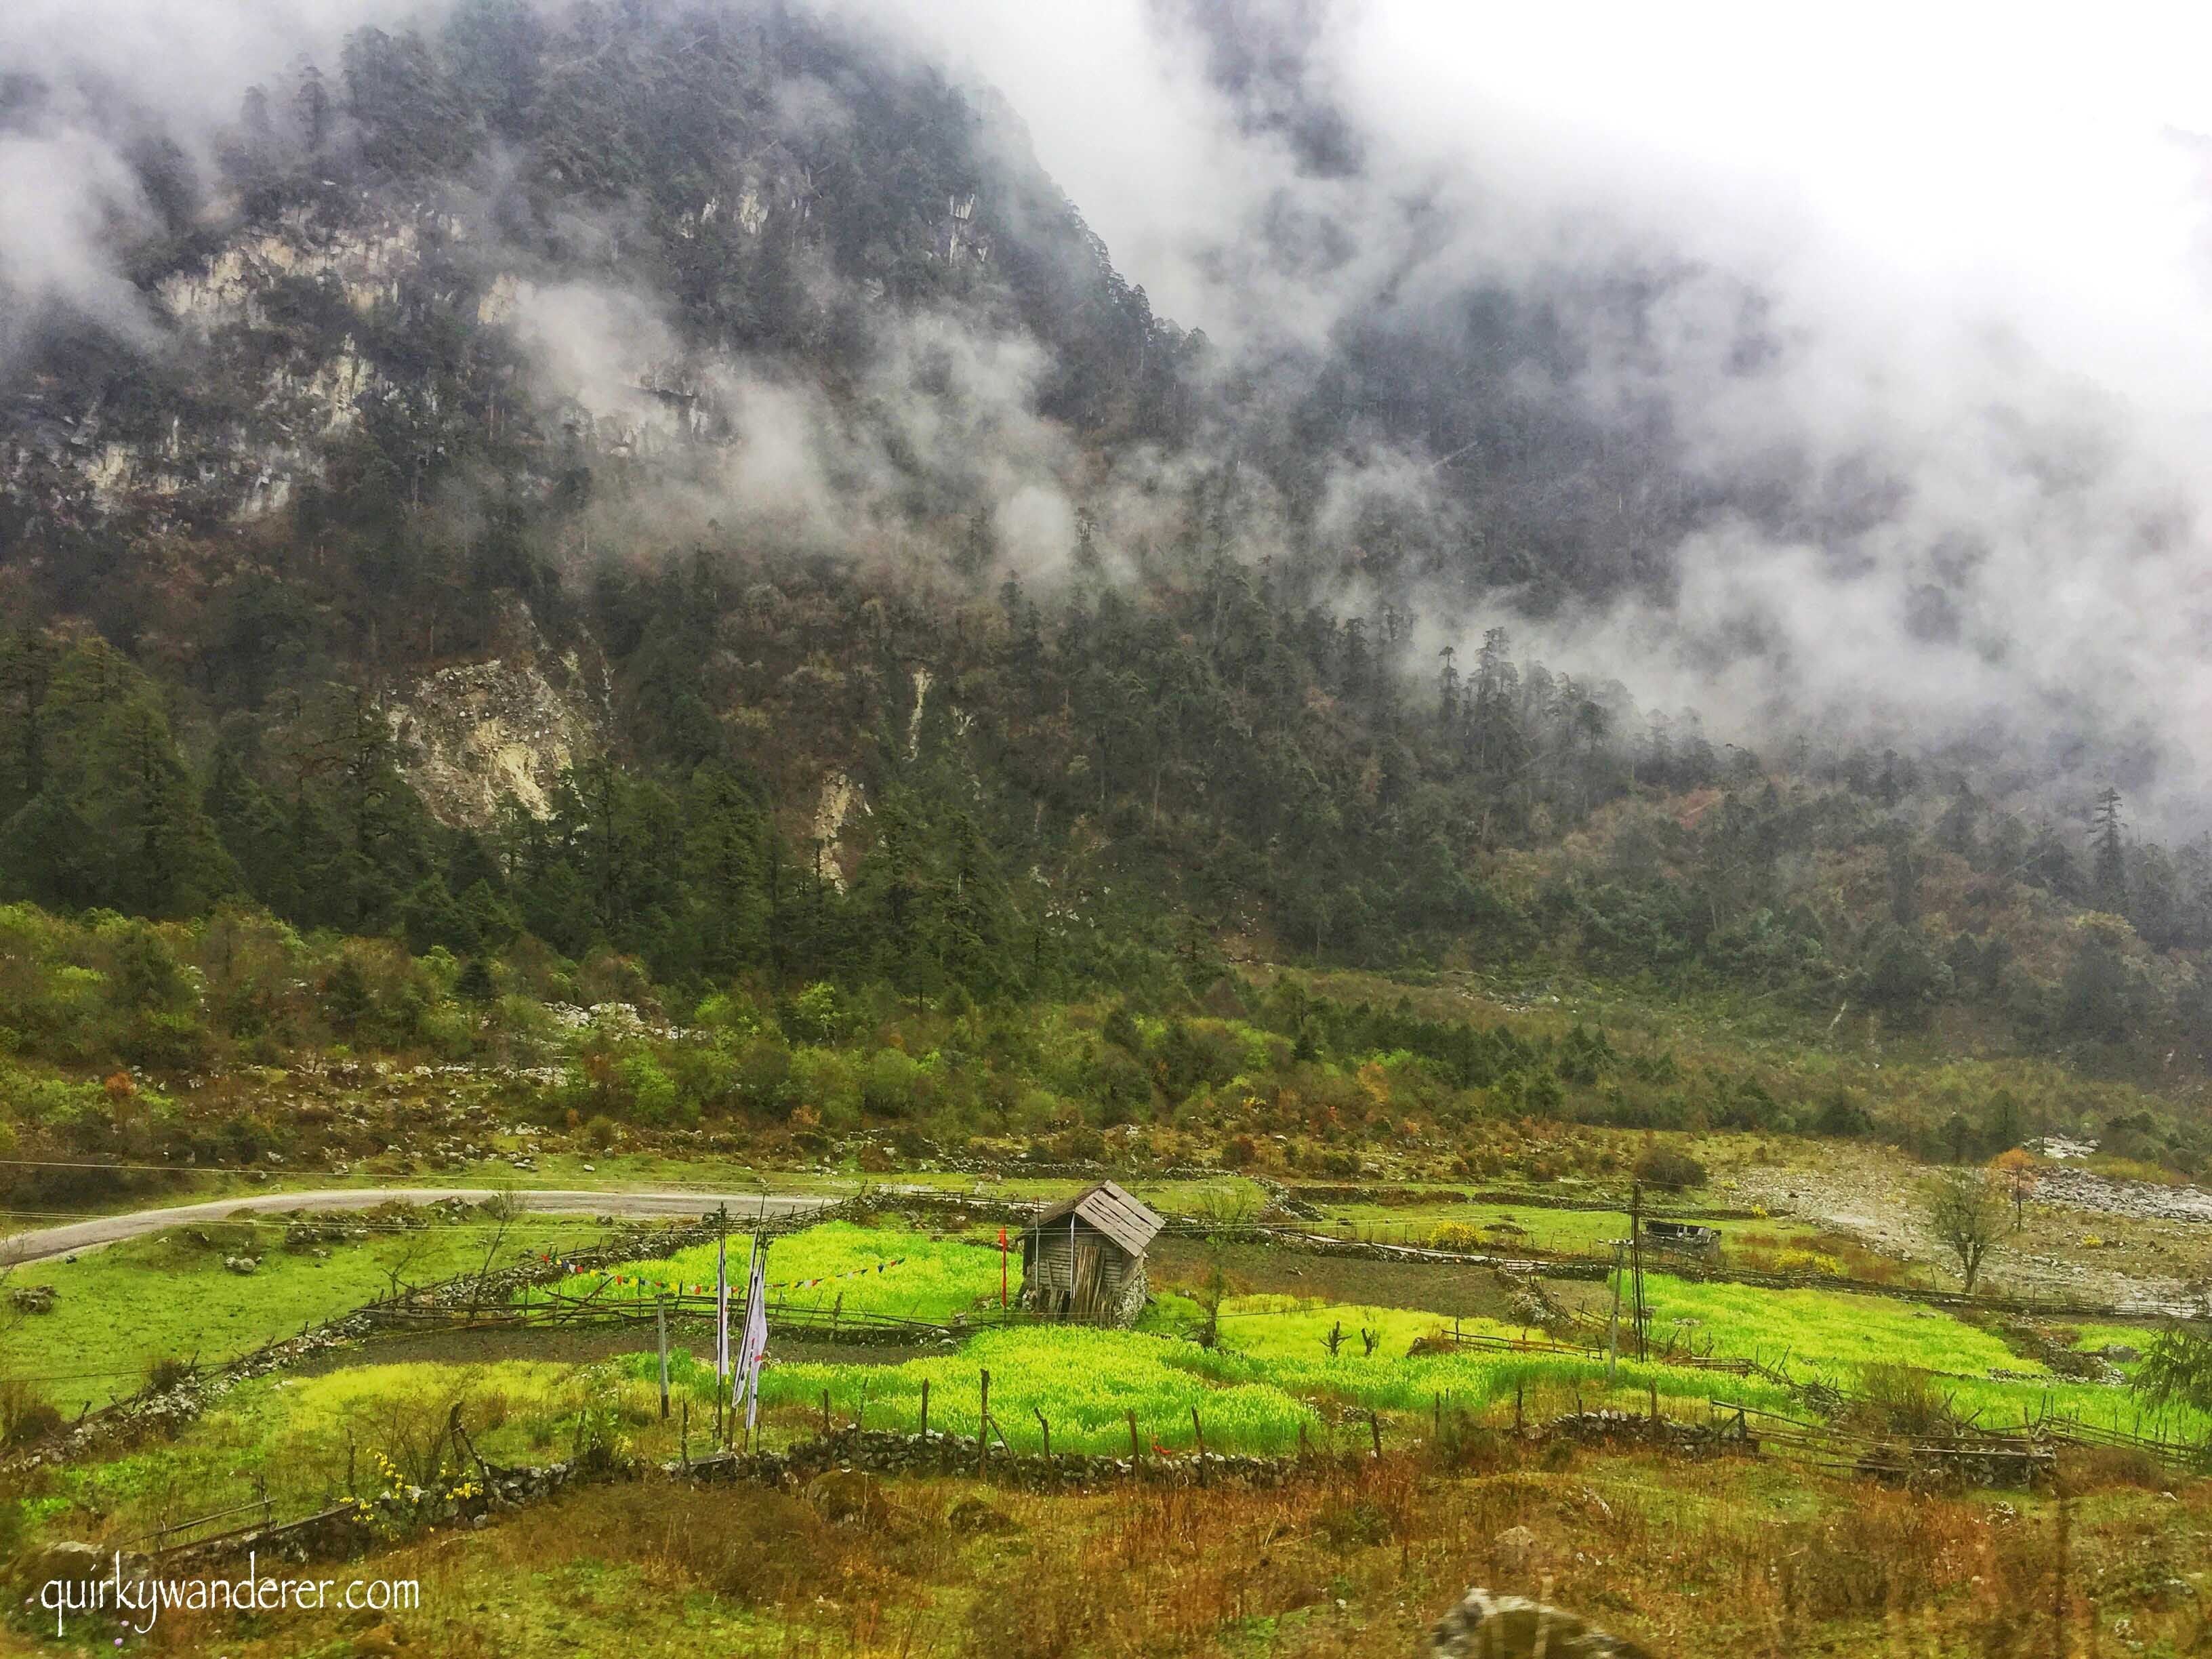 Yumthang valley in North Sikkim is known for its rhododendron blooms, dramatic scenery and the mighty Teesta river that flows in its scenic environs...